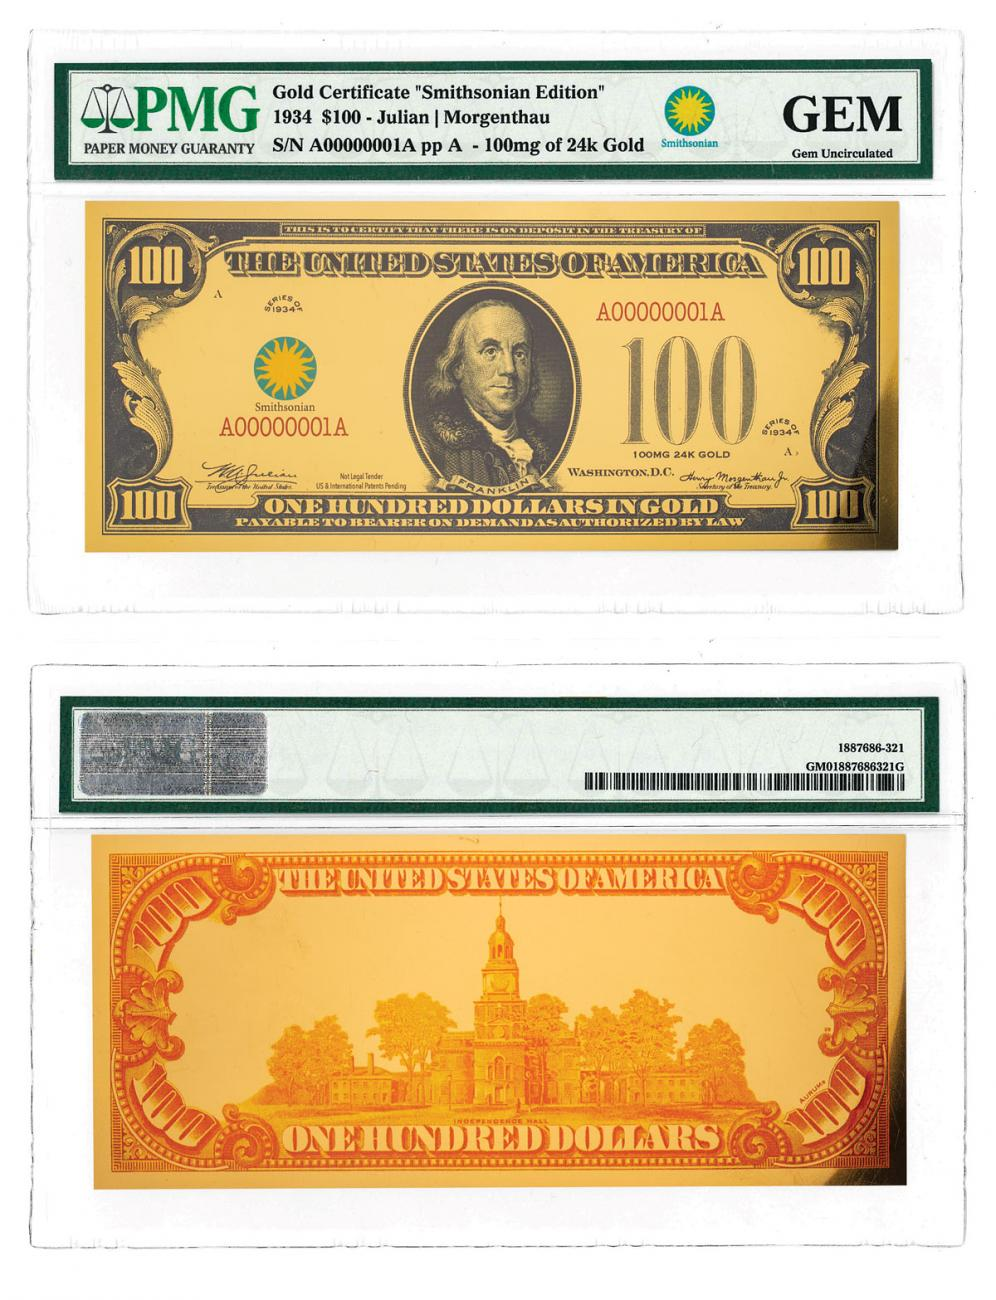 $100 24K Gold Certificate - Smithsonian Edition 1934 PMG GEM